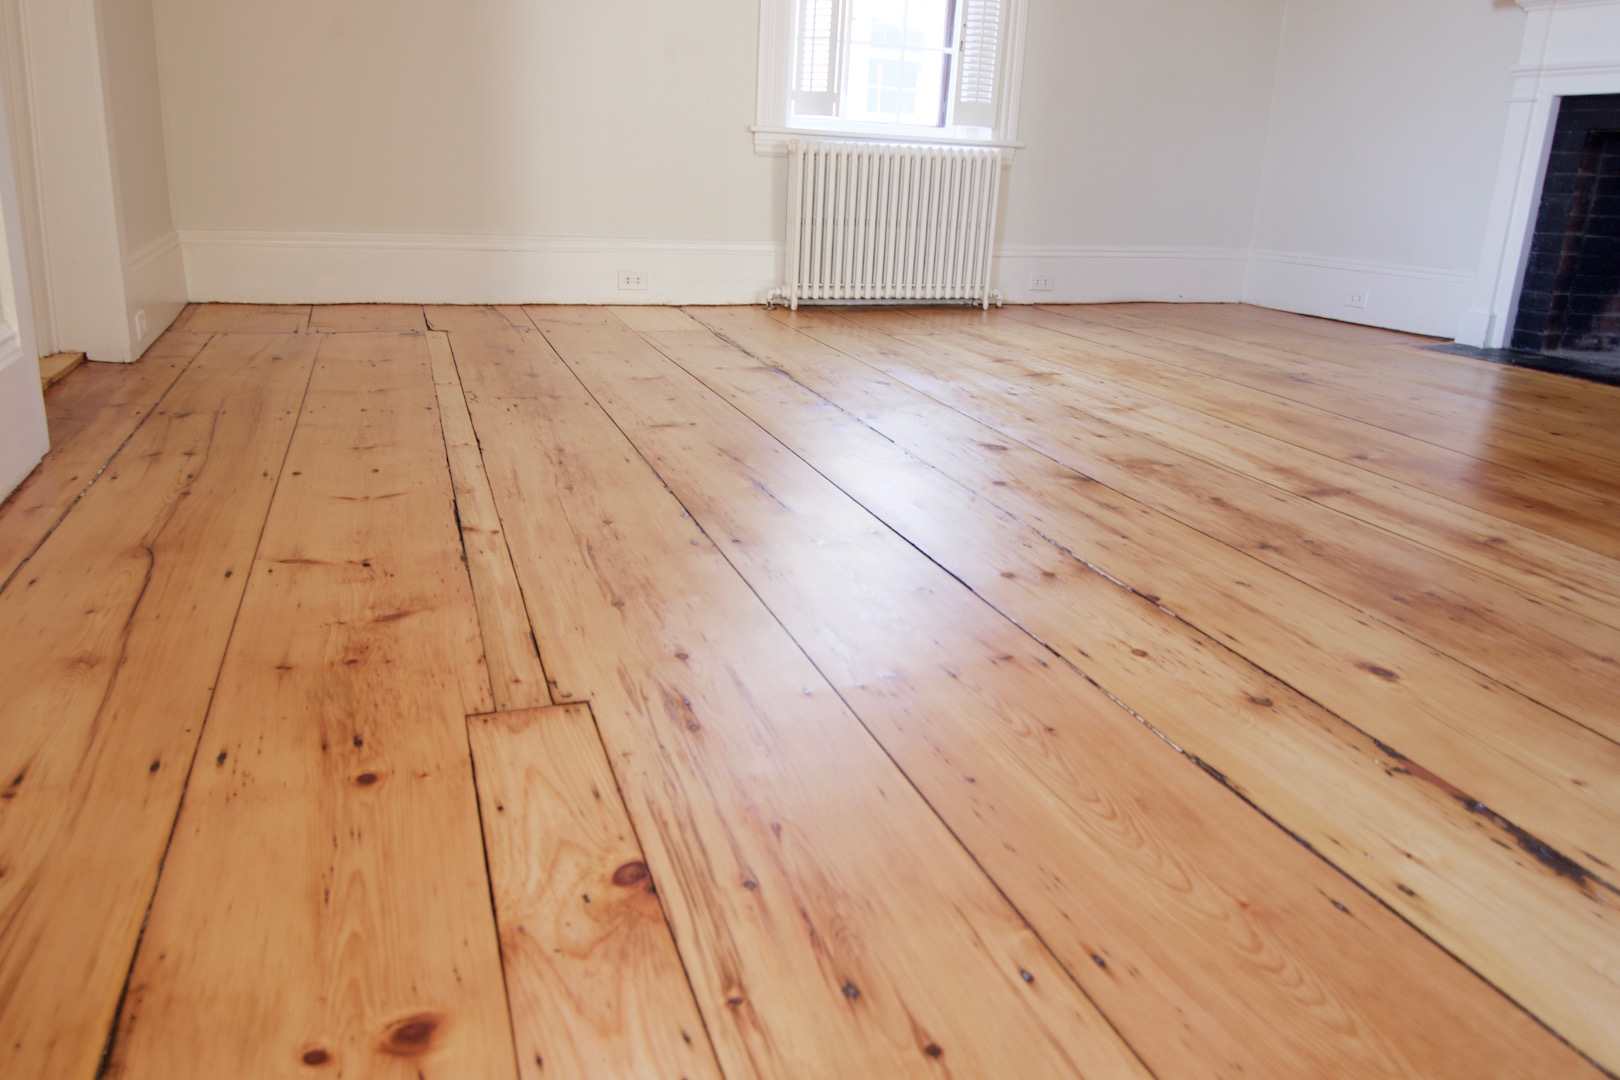 What size nails for hardwood flooring